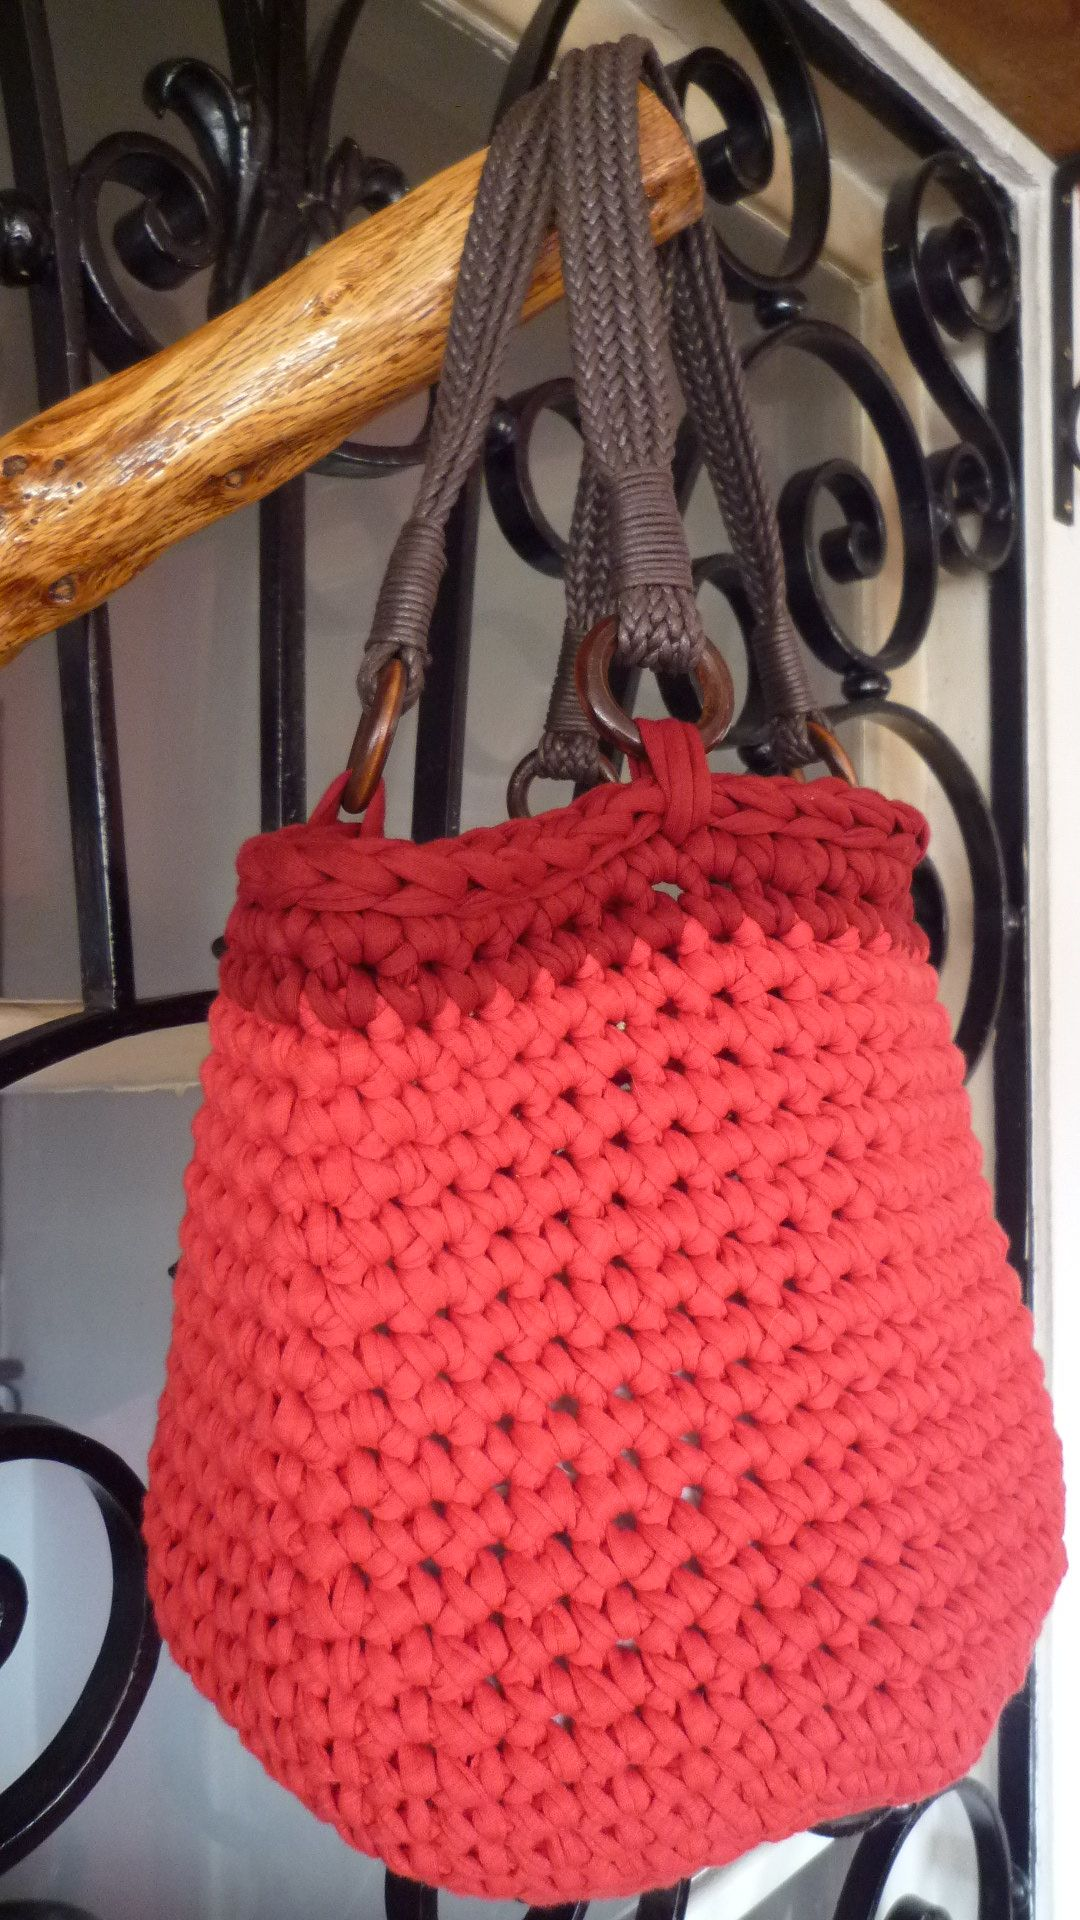 Crochet Bag T Shirt Yarn Ana Coelho Pinterest